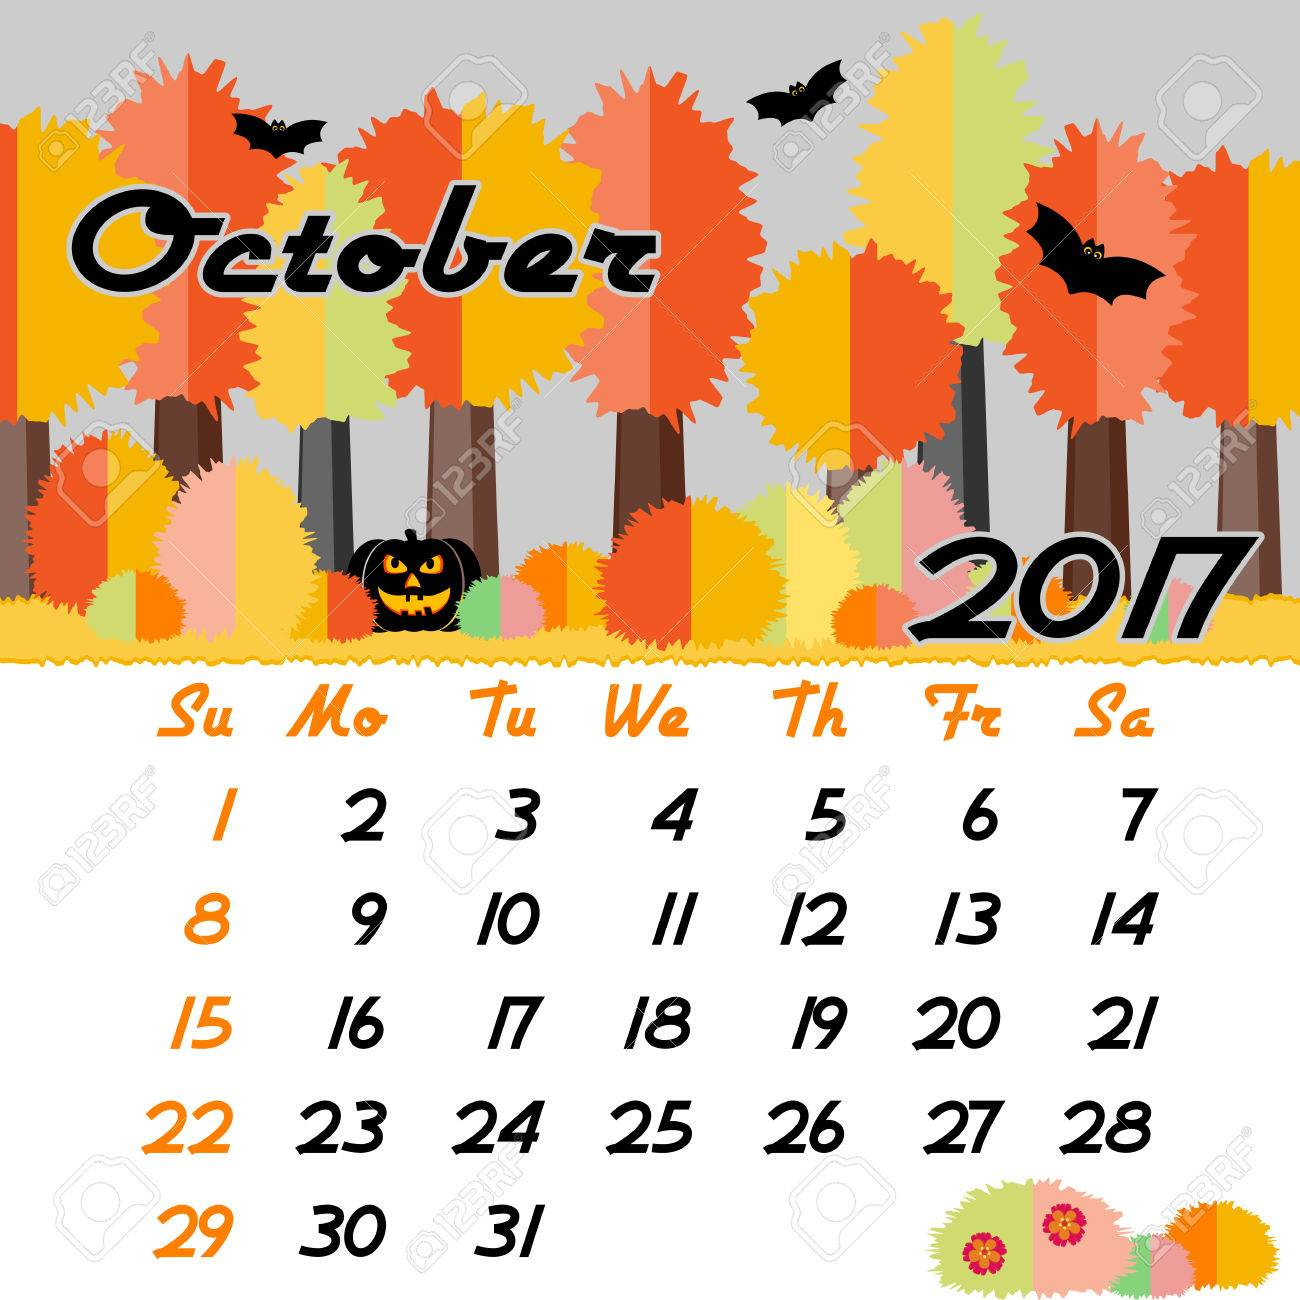 October Calendar Design : Calendar design grid with seasonal forest in flat style and dates